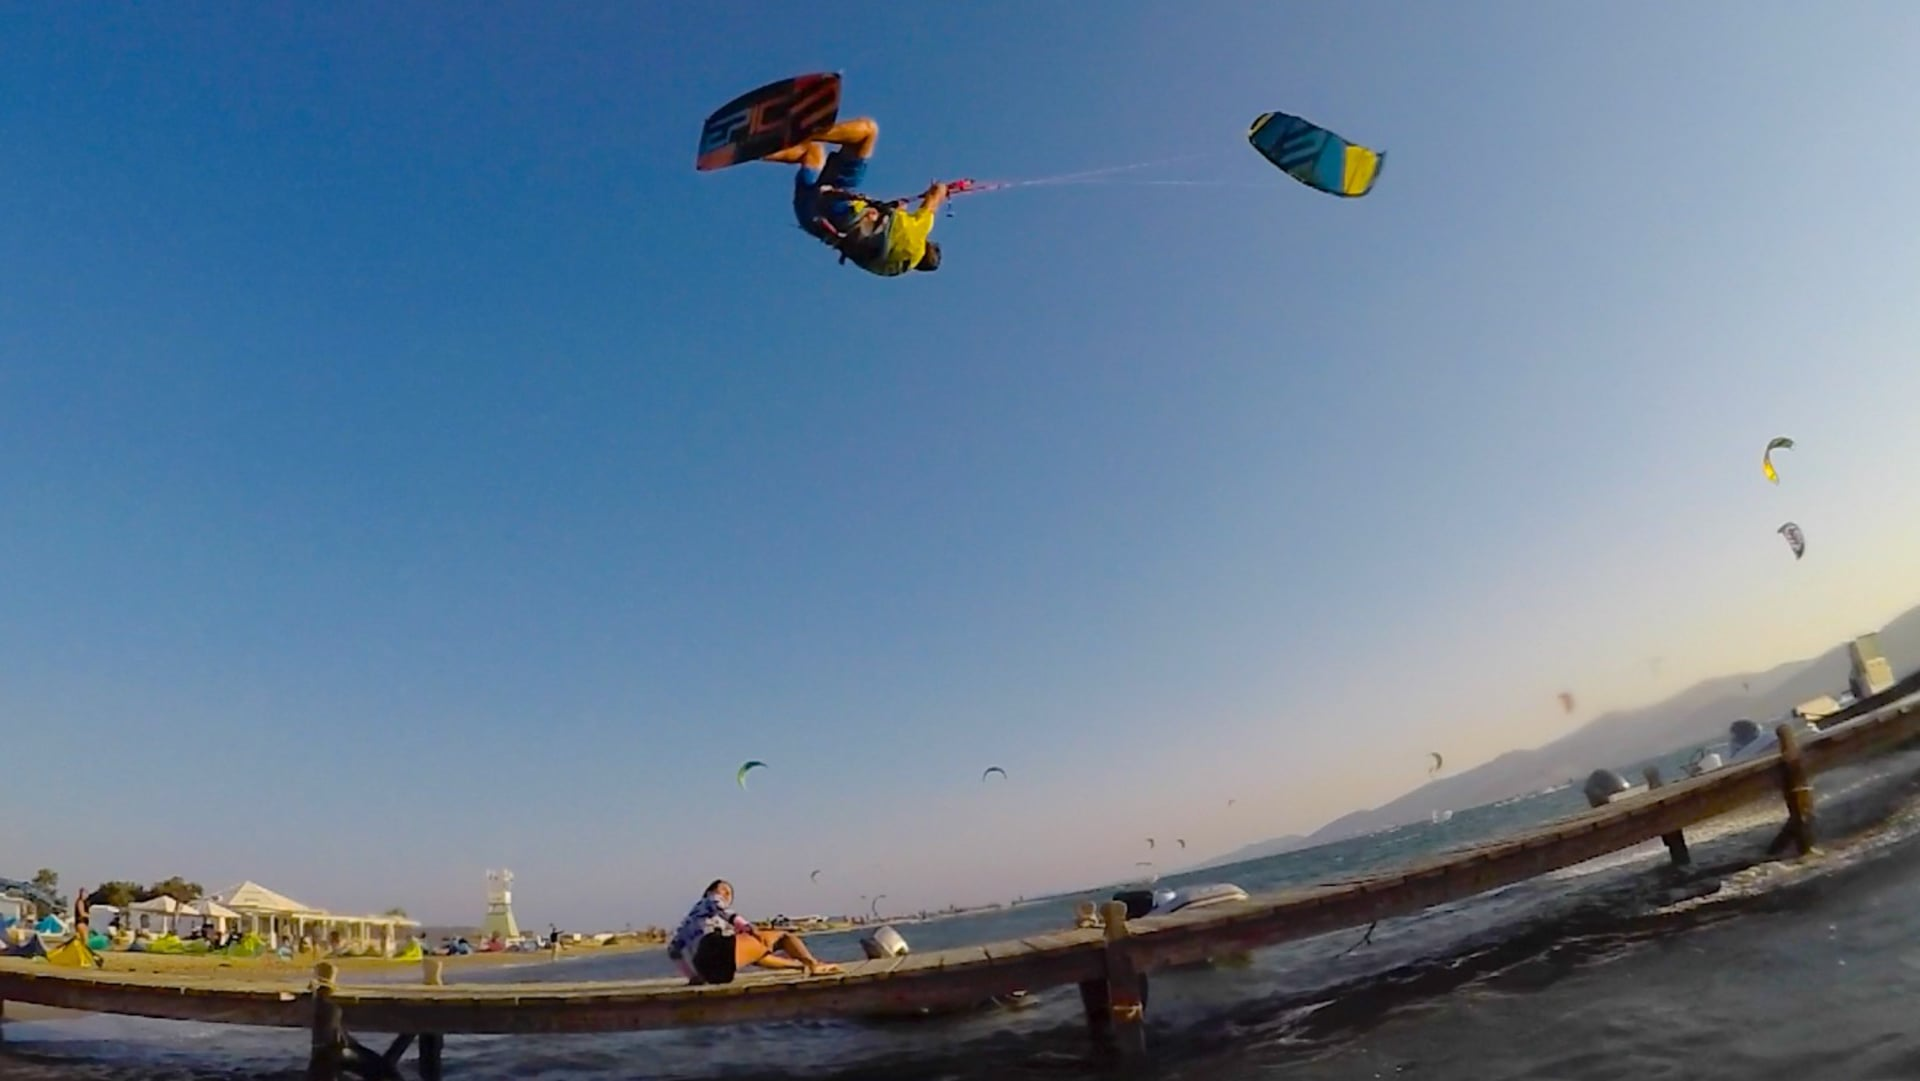 50 years old Dimitri King of the Air - with Epic Kites Kiteboarding